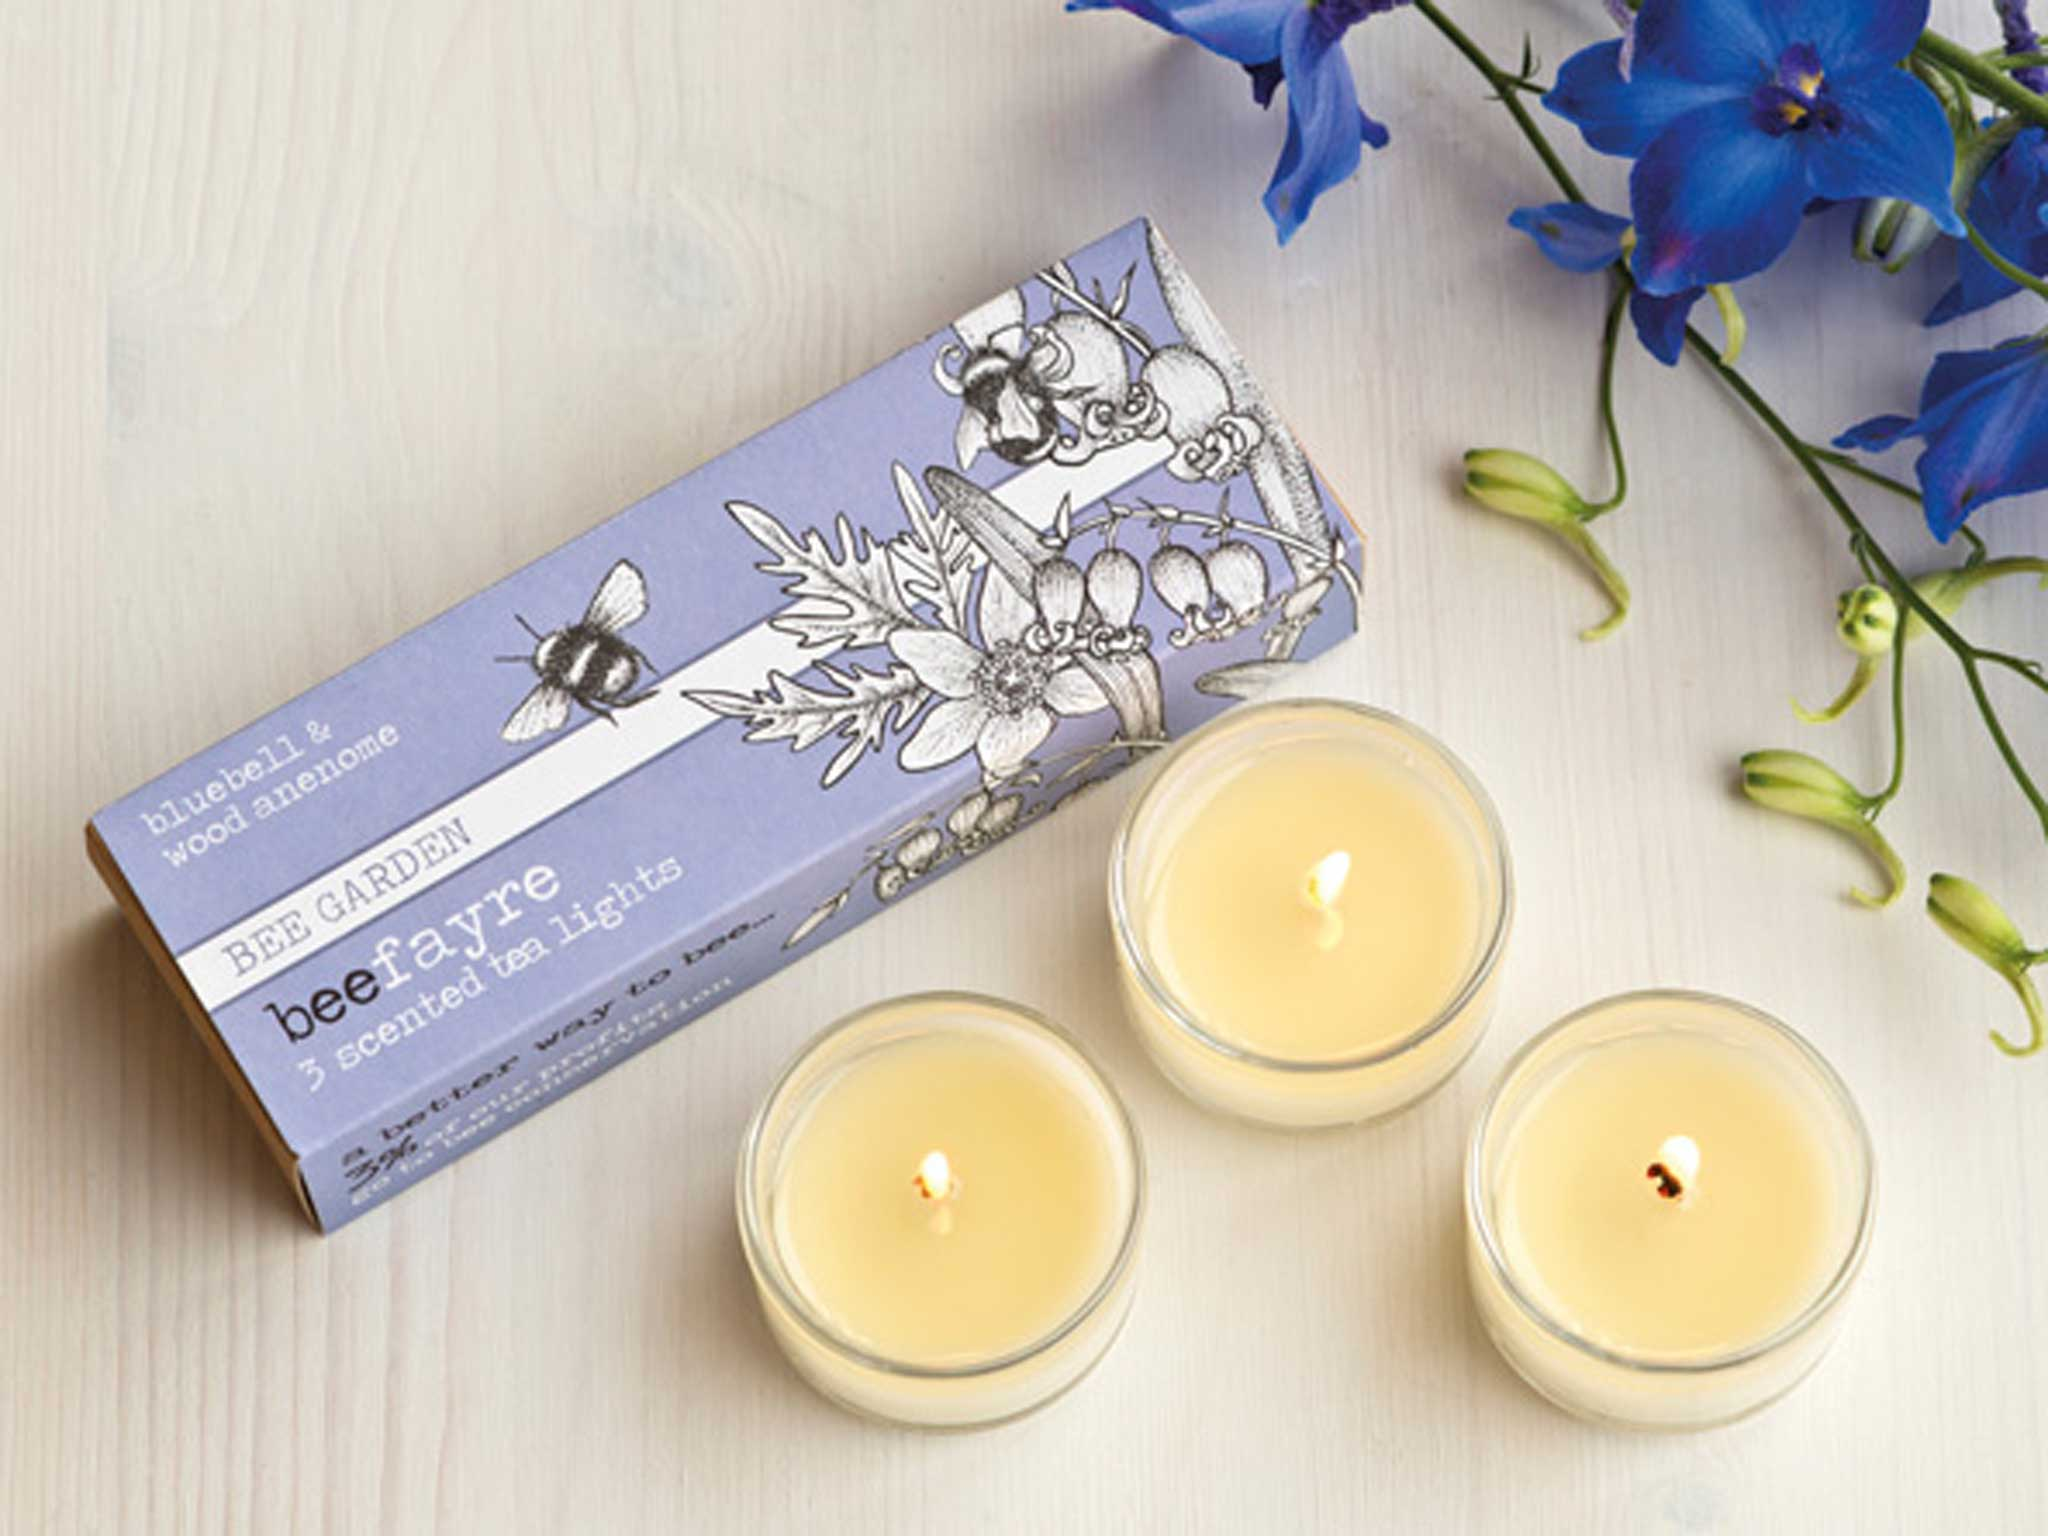 10 best travel candles | The Independentindependent_brand_ident_LOGOUntitled